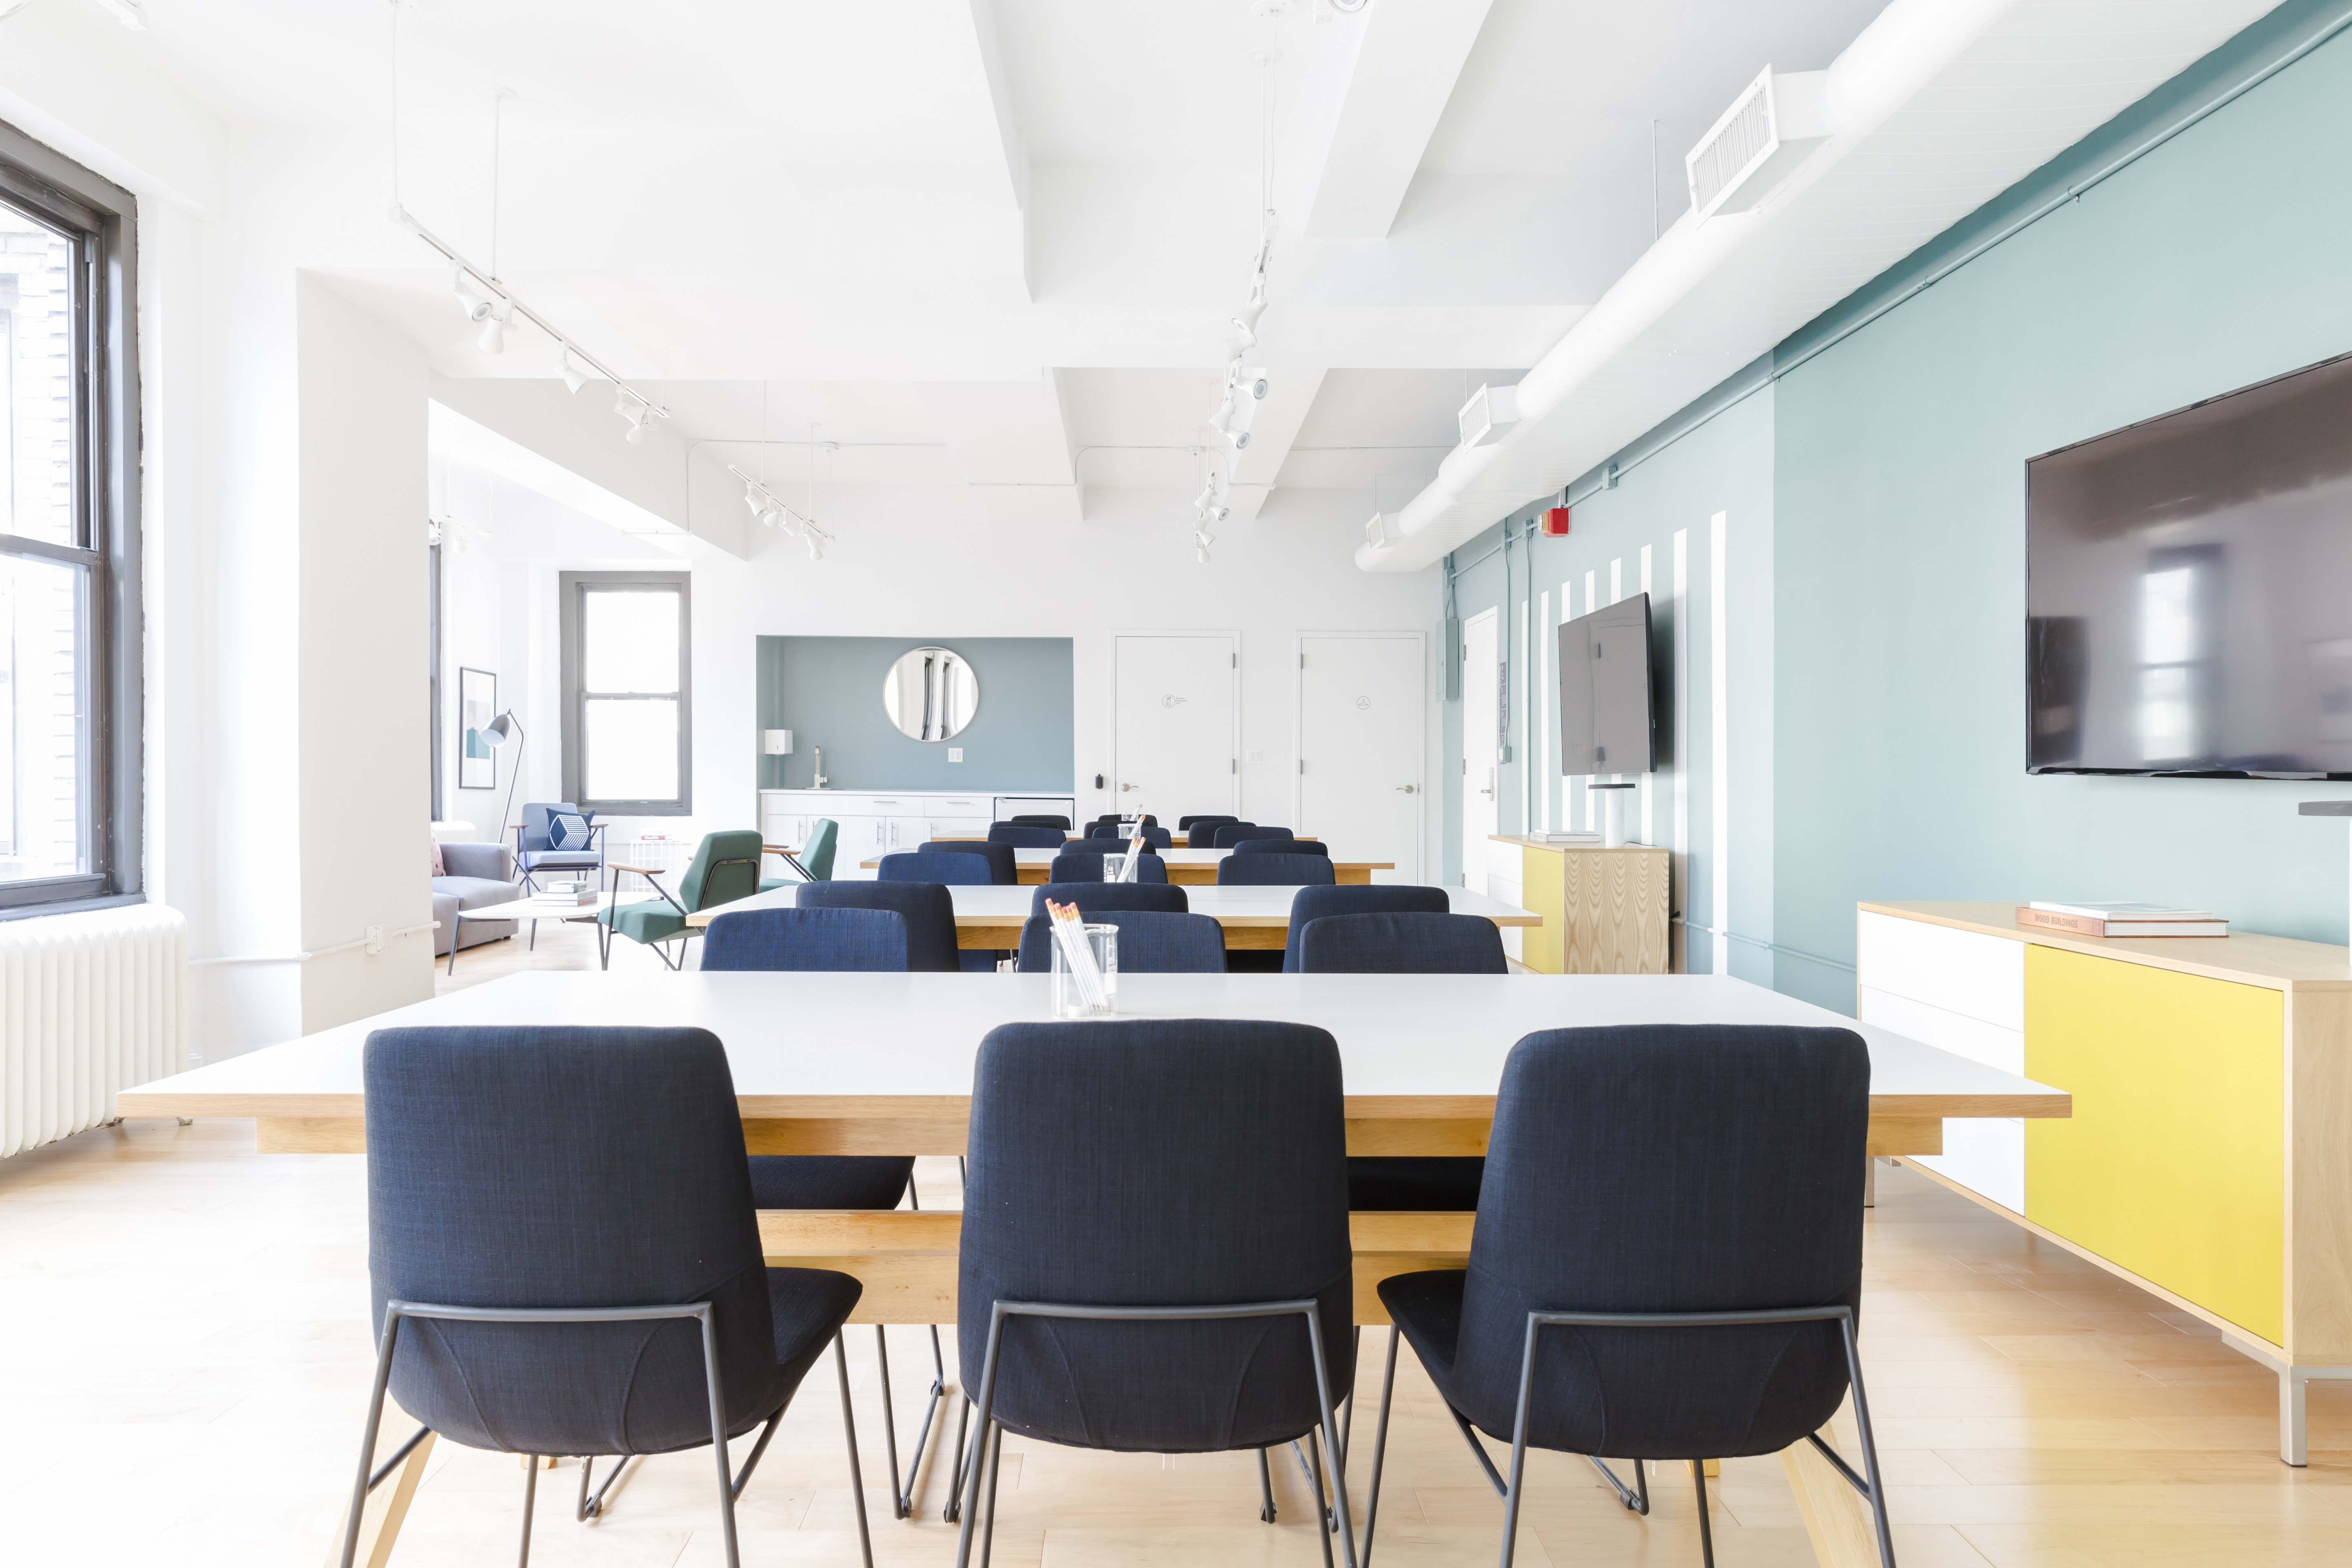 meetup space at 2 West 46th Street ,New York City